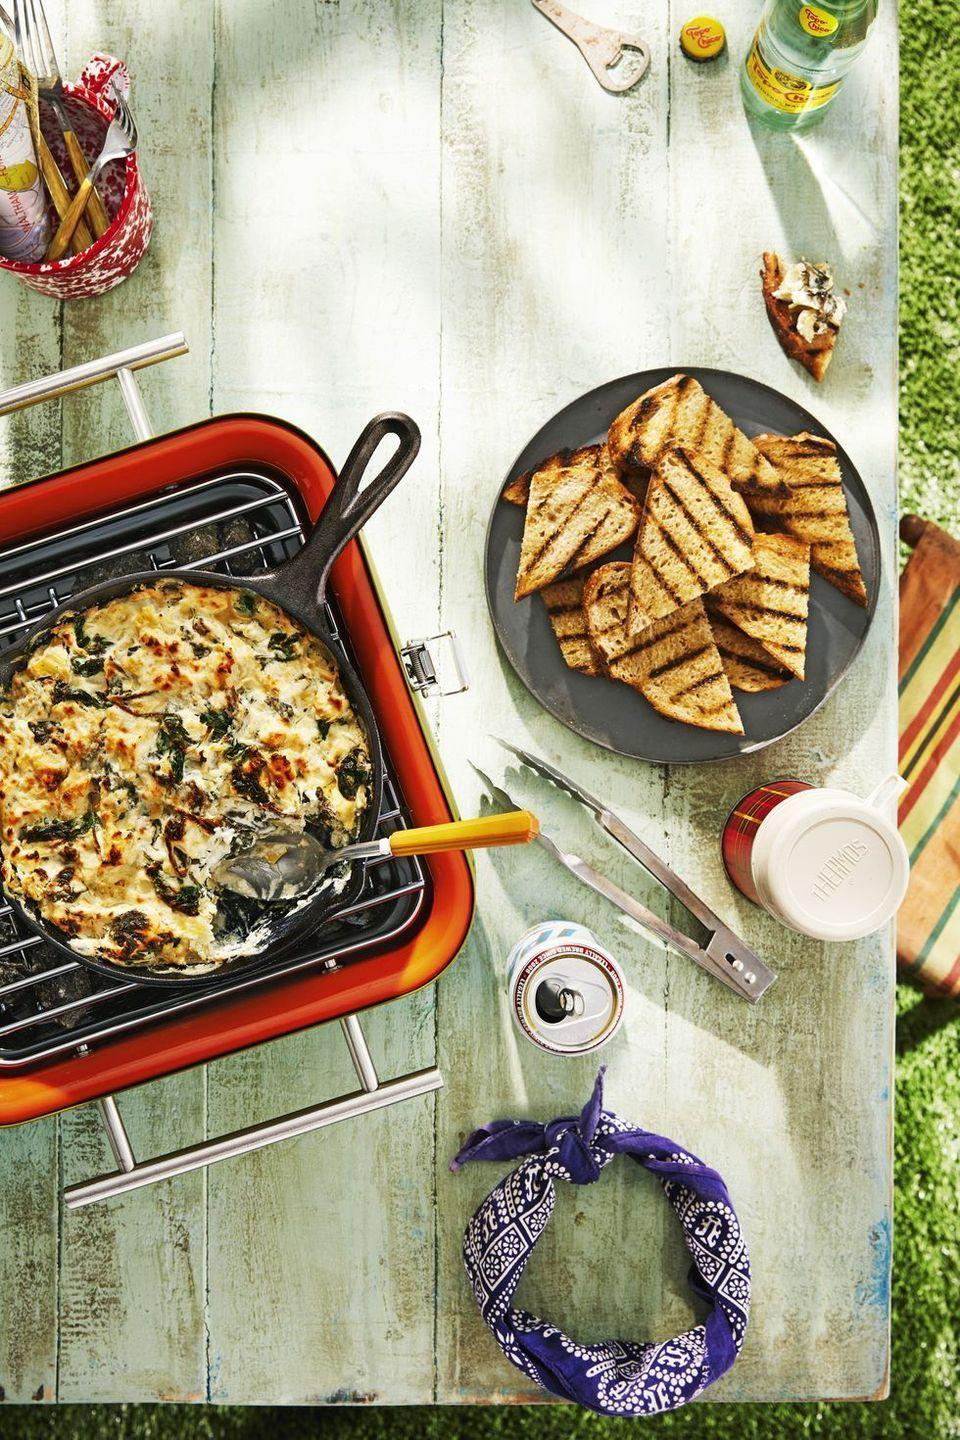 "<p>This classic app gets a smoky treatment when cooked on a grill. To keep the fat content down, use lighter versions of sour cream and cream cheese.<br></p><p><strong><a href=""https://www.countryliving.com/food-drinks/a28071095/skillet-spinach-artichoke-dip-with-fire-roasted-bread-recipe/"" rel=""nofollow noopener"" target=""_blank"" data-ylk=""slk:Get the recipe"" class=""link rapid-noclick-resp"">Get the recipe</a>.</strong></p><p><a class=""link rapid-noclick-resp"" href=""https://www.amazon.com/Victoria-Skillet-Seasoned-Flaxseed-Certified/dp/B01726HD72/?tag=syn-yahoo-20&ascsubtag=%5Bartid%7C10063.g.35089489%5Bsrc%7Cyahoo-us"" rel=""nofollow noopener"" target=""_blank"" data-ylk=""slk:SHOP SKILLETS"">SHOP SKILLETS</a></p>"